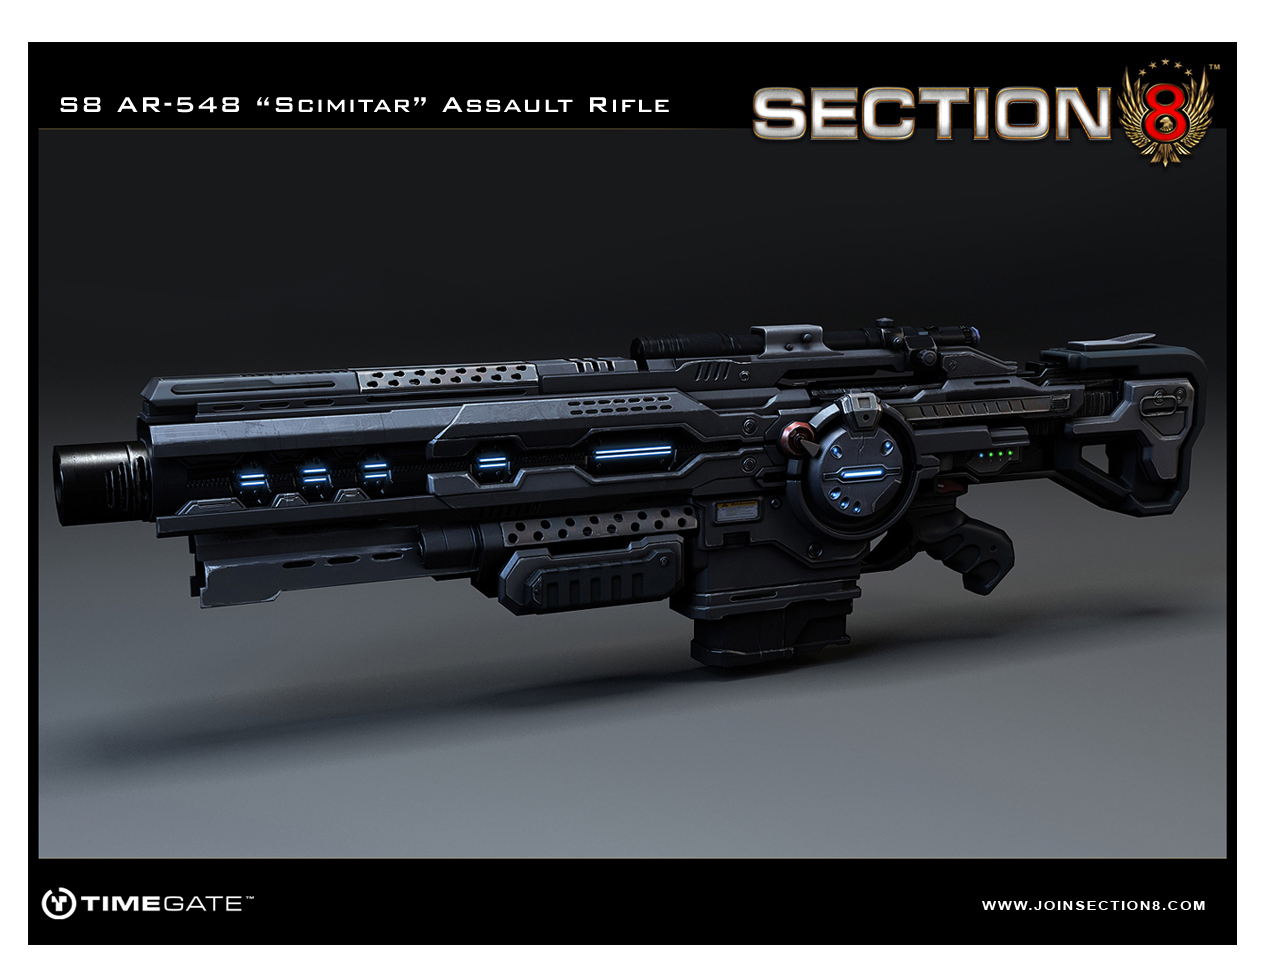 section 8 rifle Gallery